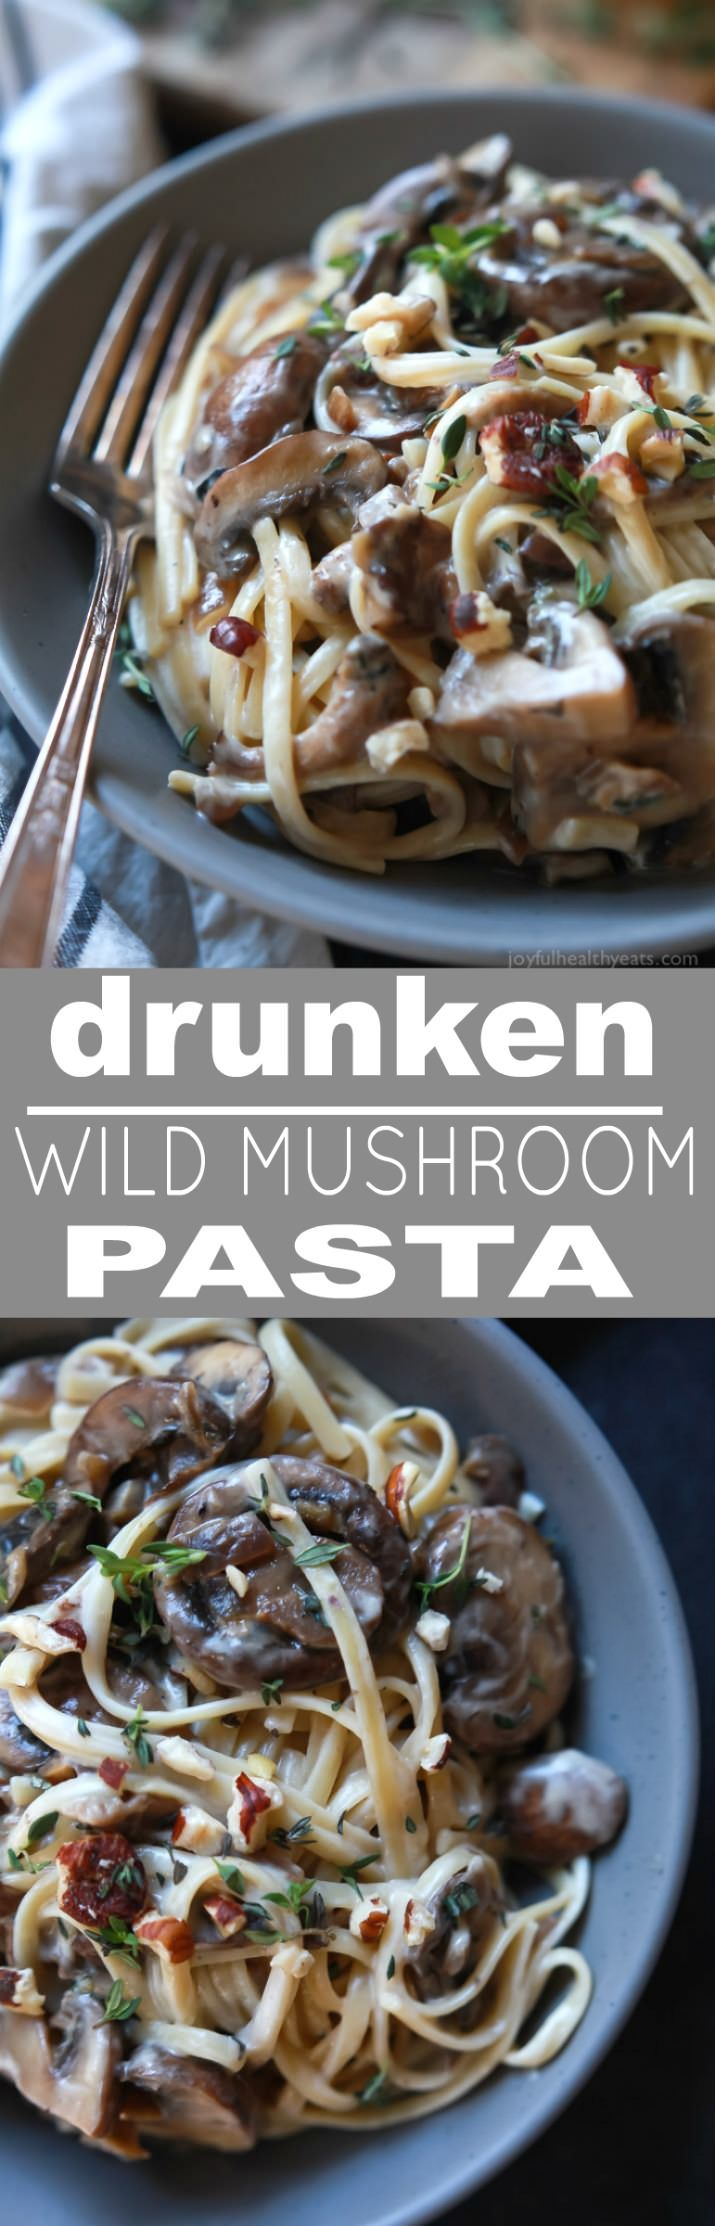 Drunken Wild Mushroom Pasta with a Creamy Goat Cheese Sauce - this recipe is…